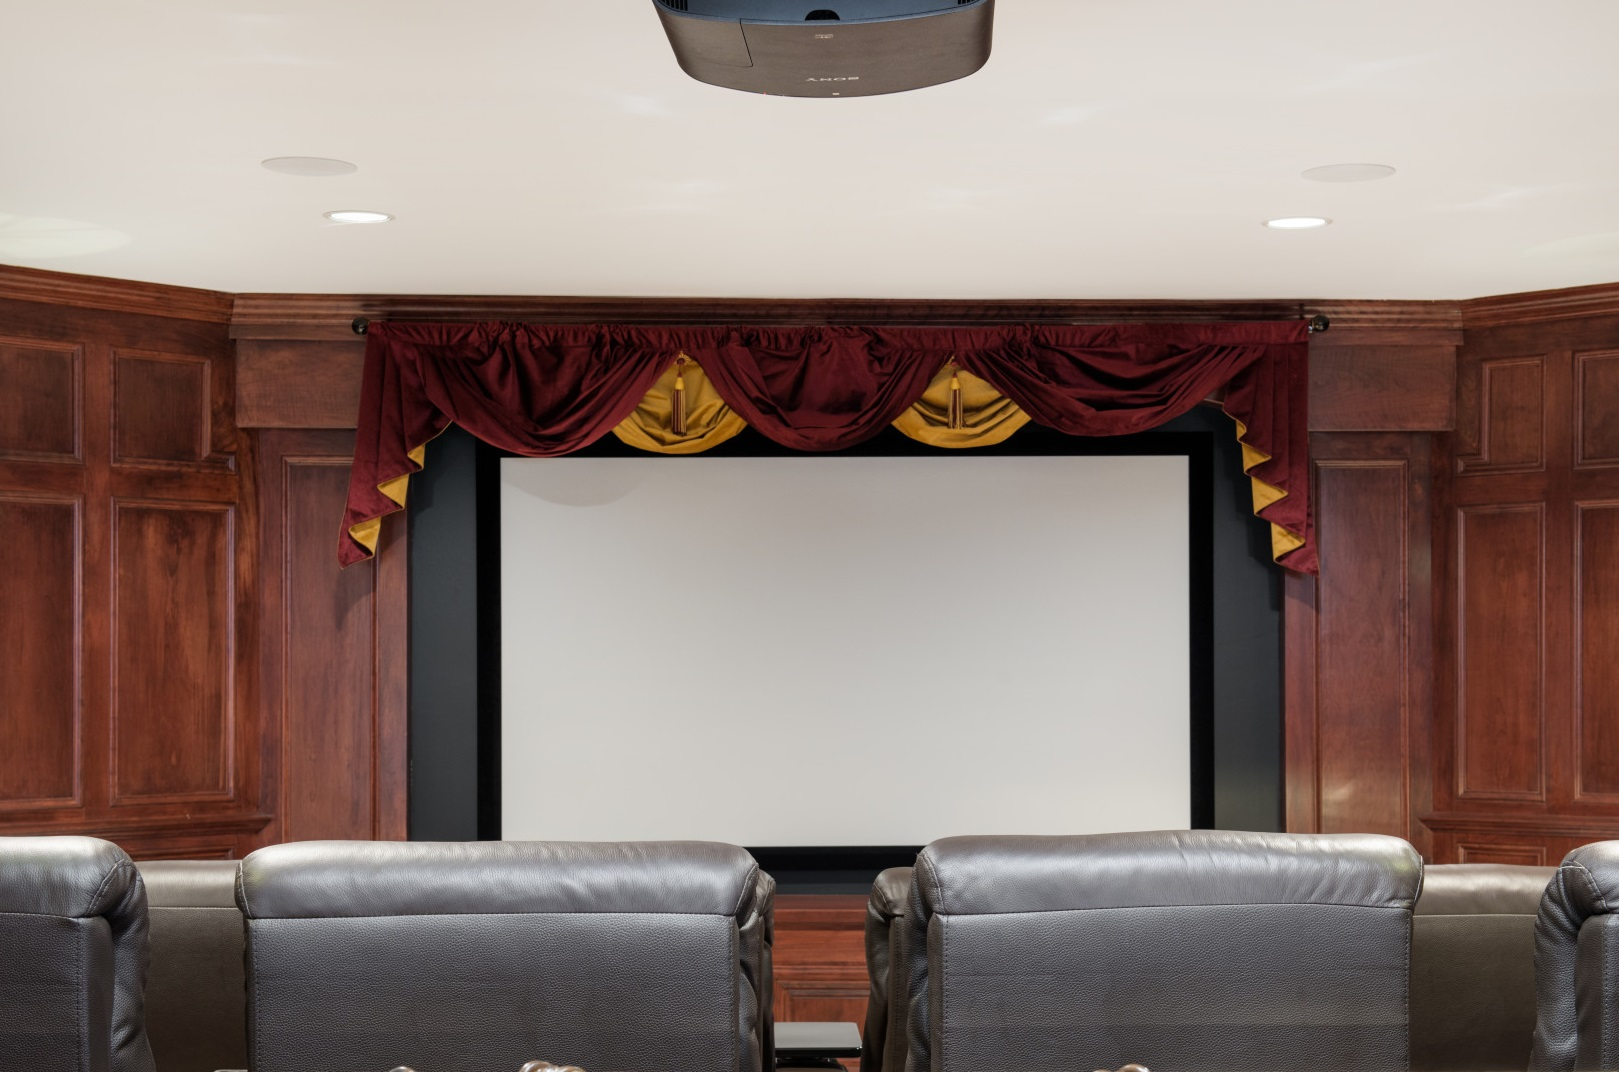 How to Choose a Screen for Your Home Theater System